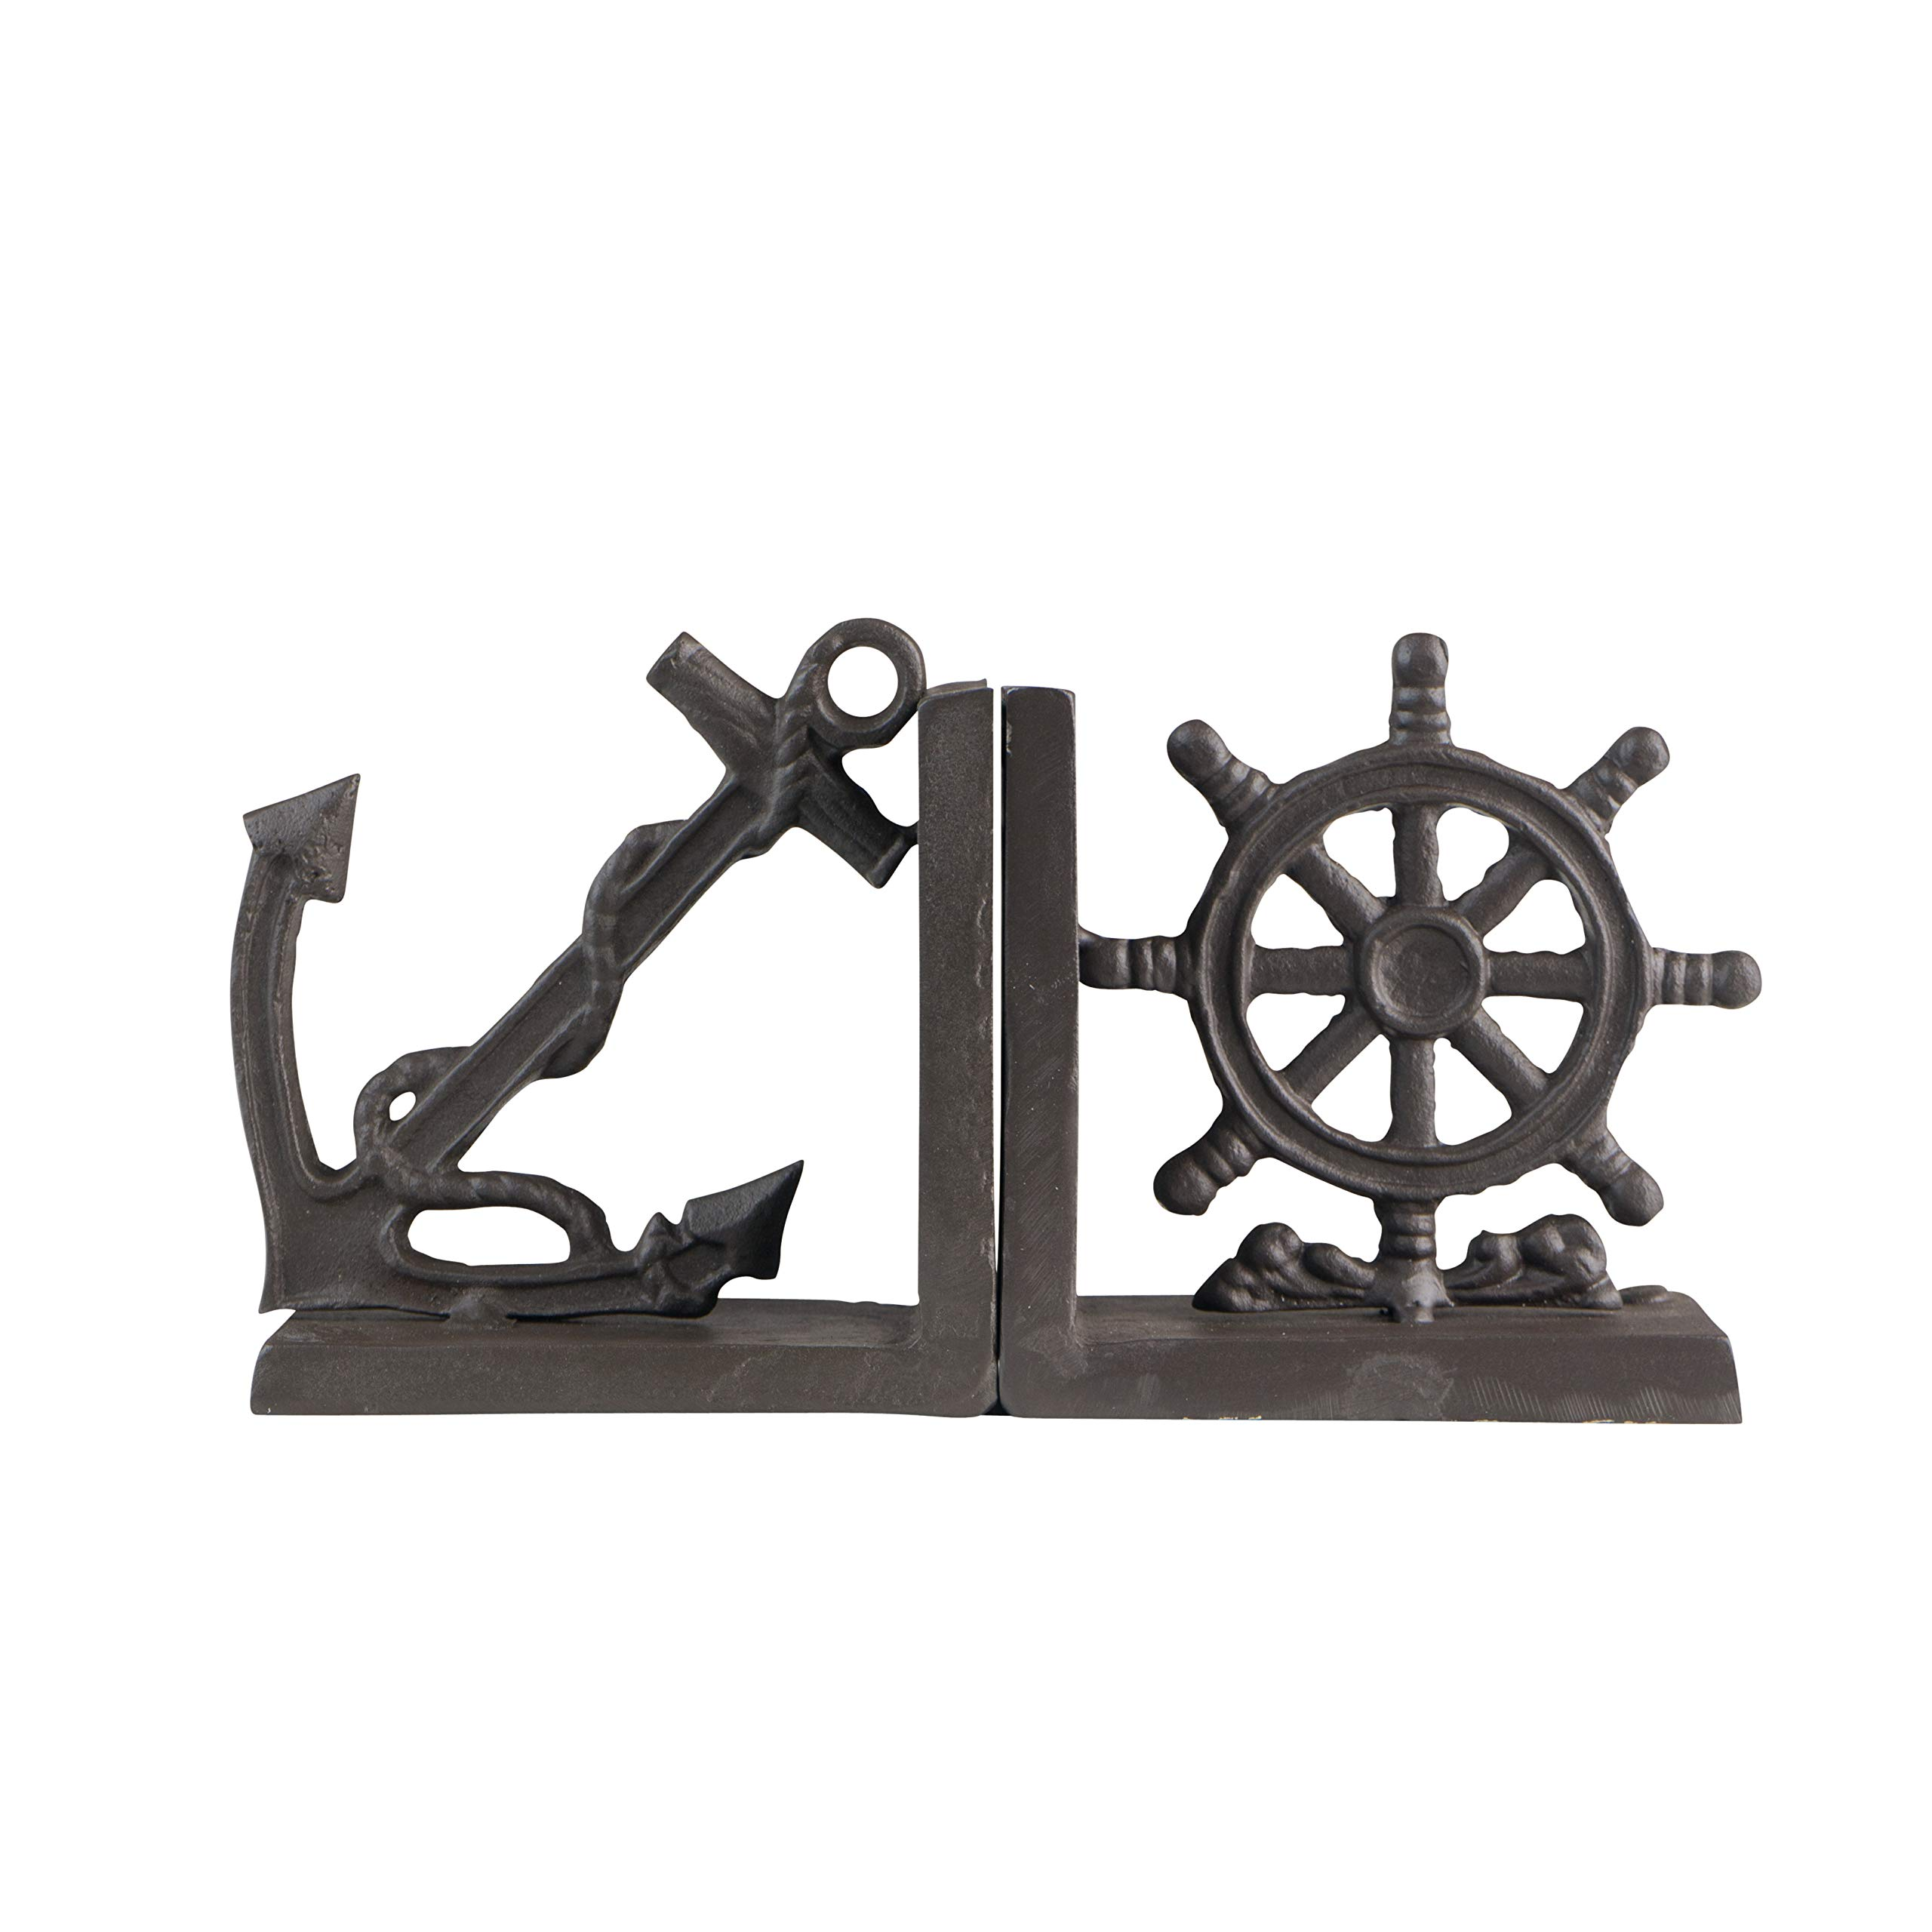 Danya B. ZI08303 Nautical/Coastal Home Decor - 2-Piece Metal Bookend Set with Anchor and Captain's Wheel by Danya B